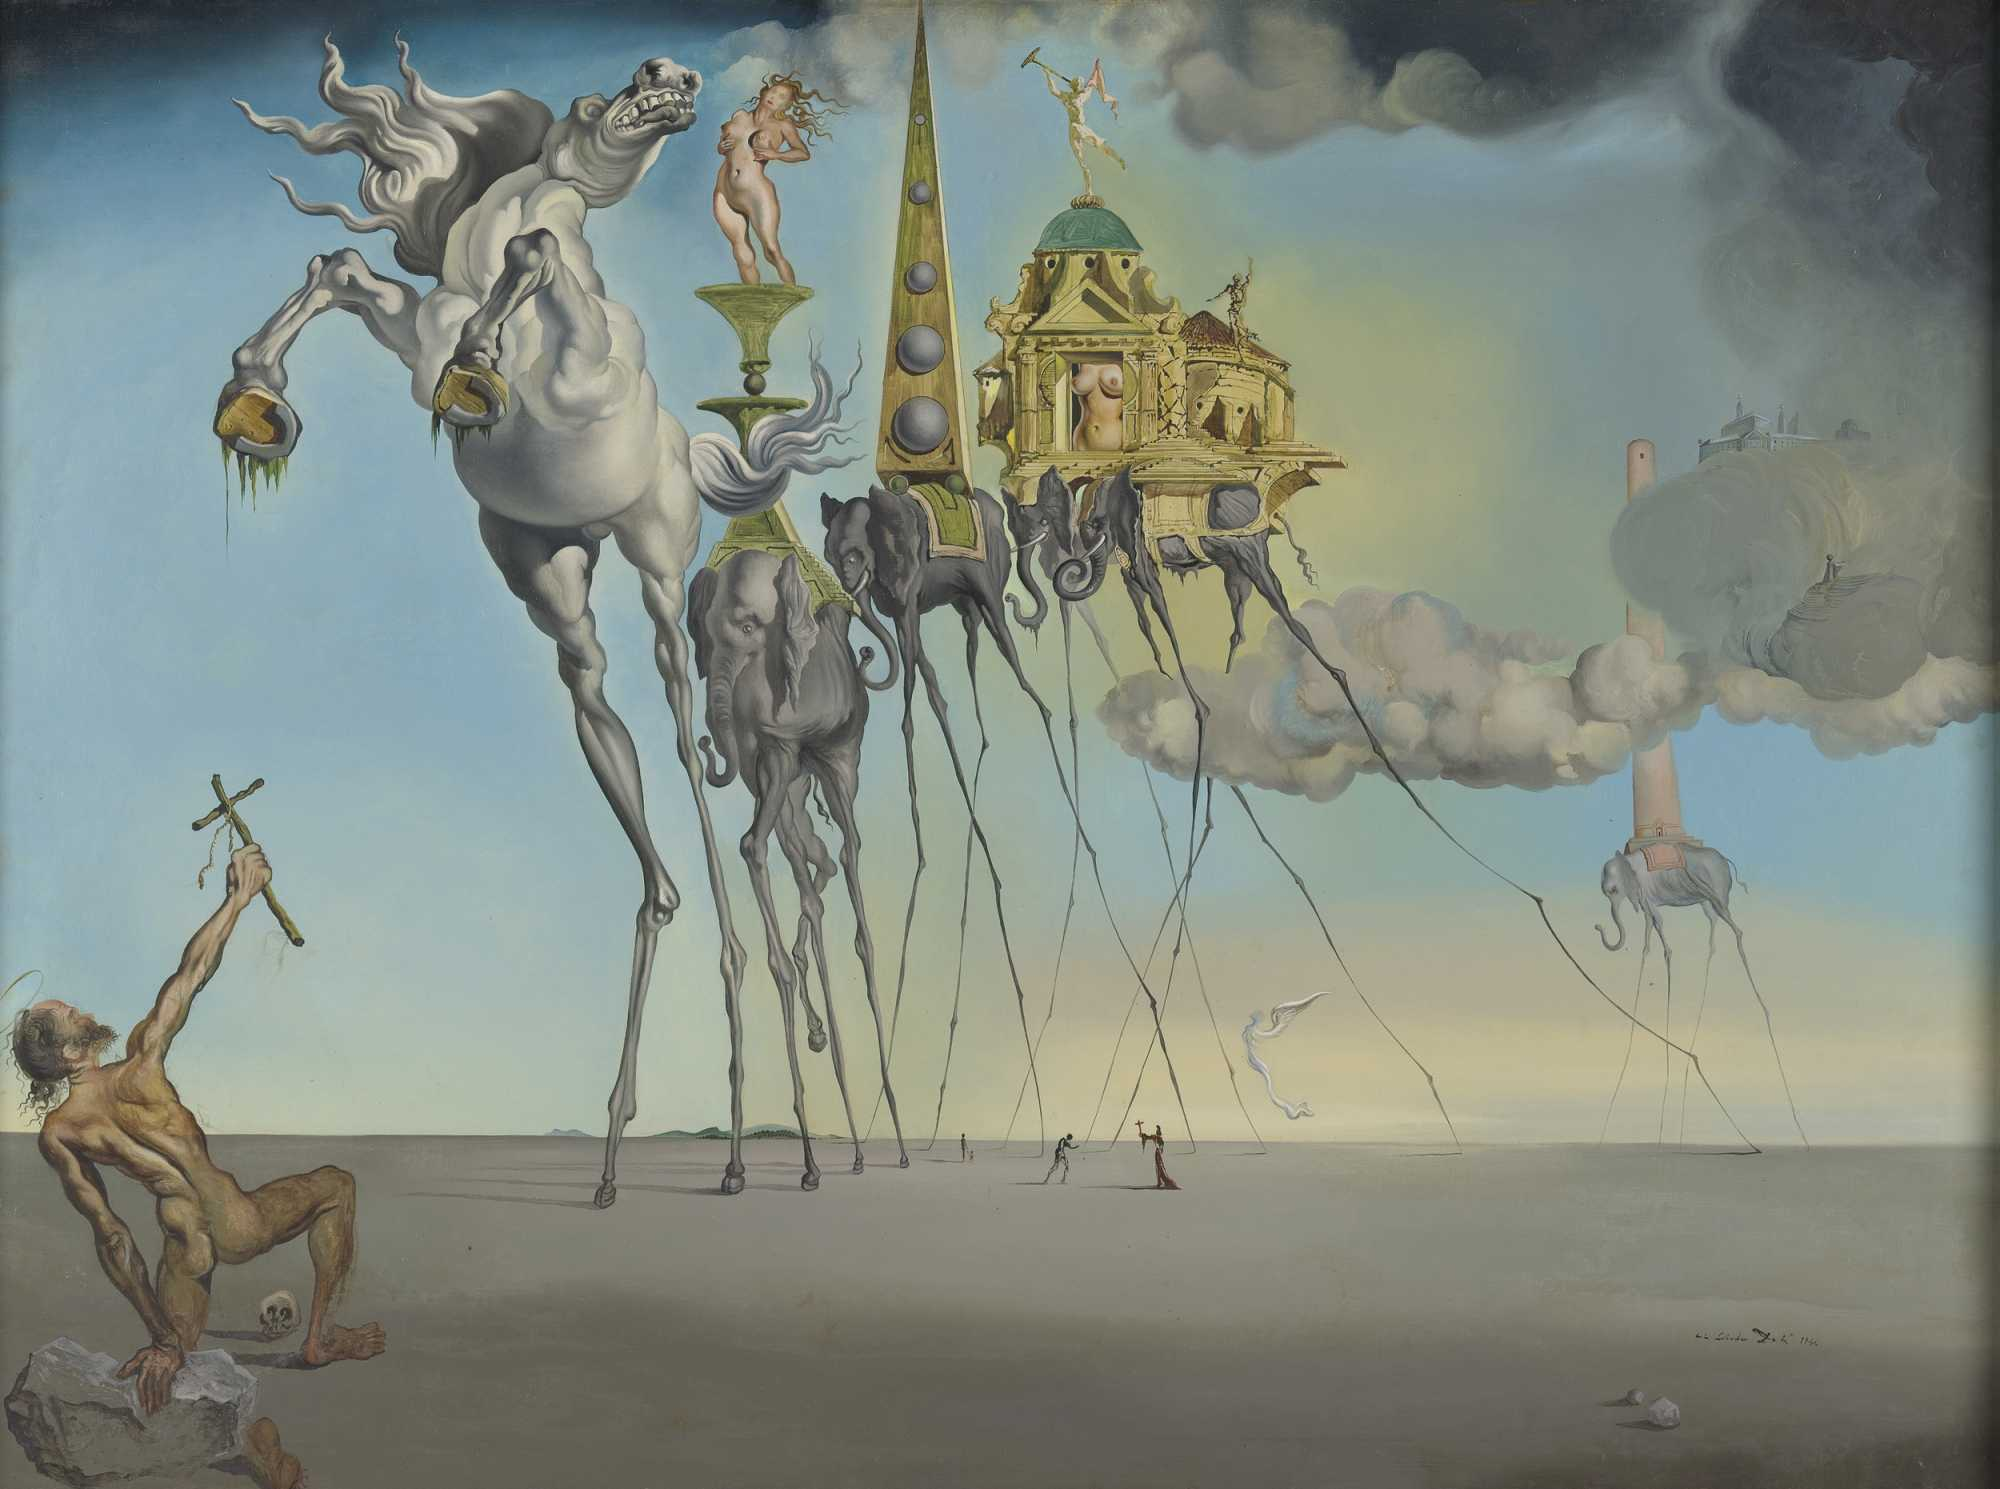 Salvador dali the real meaning behind his surreal art catawiki